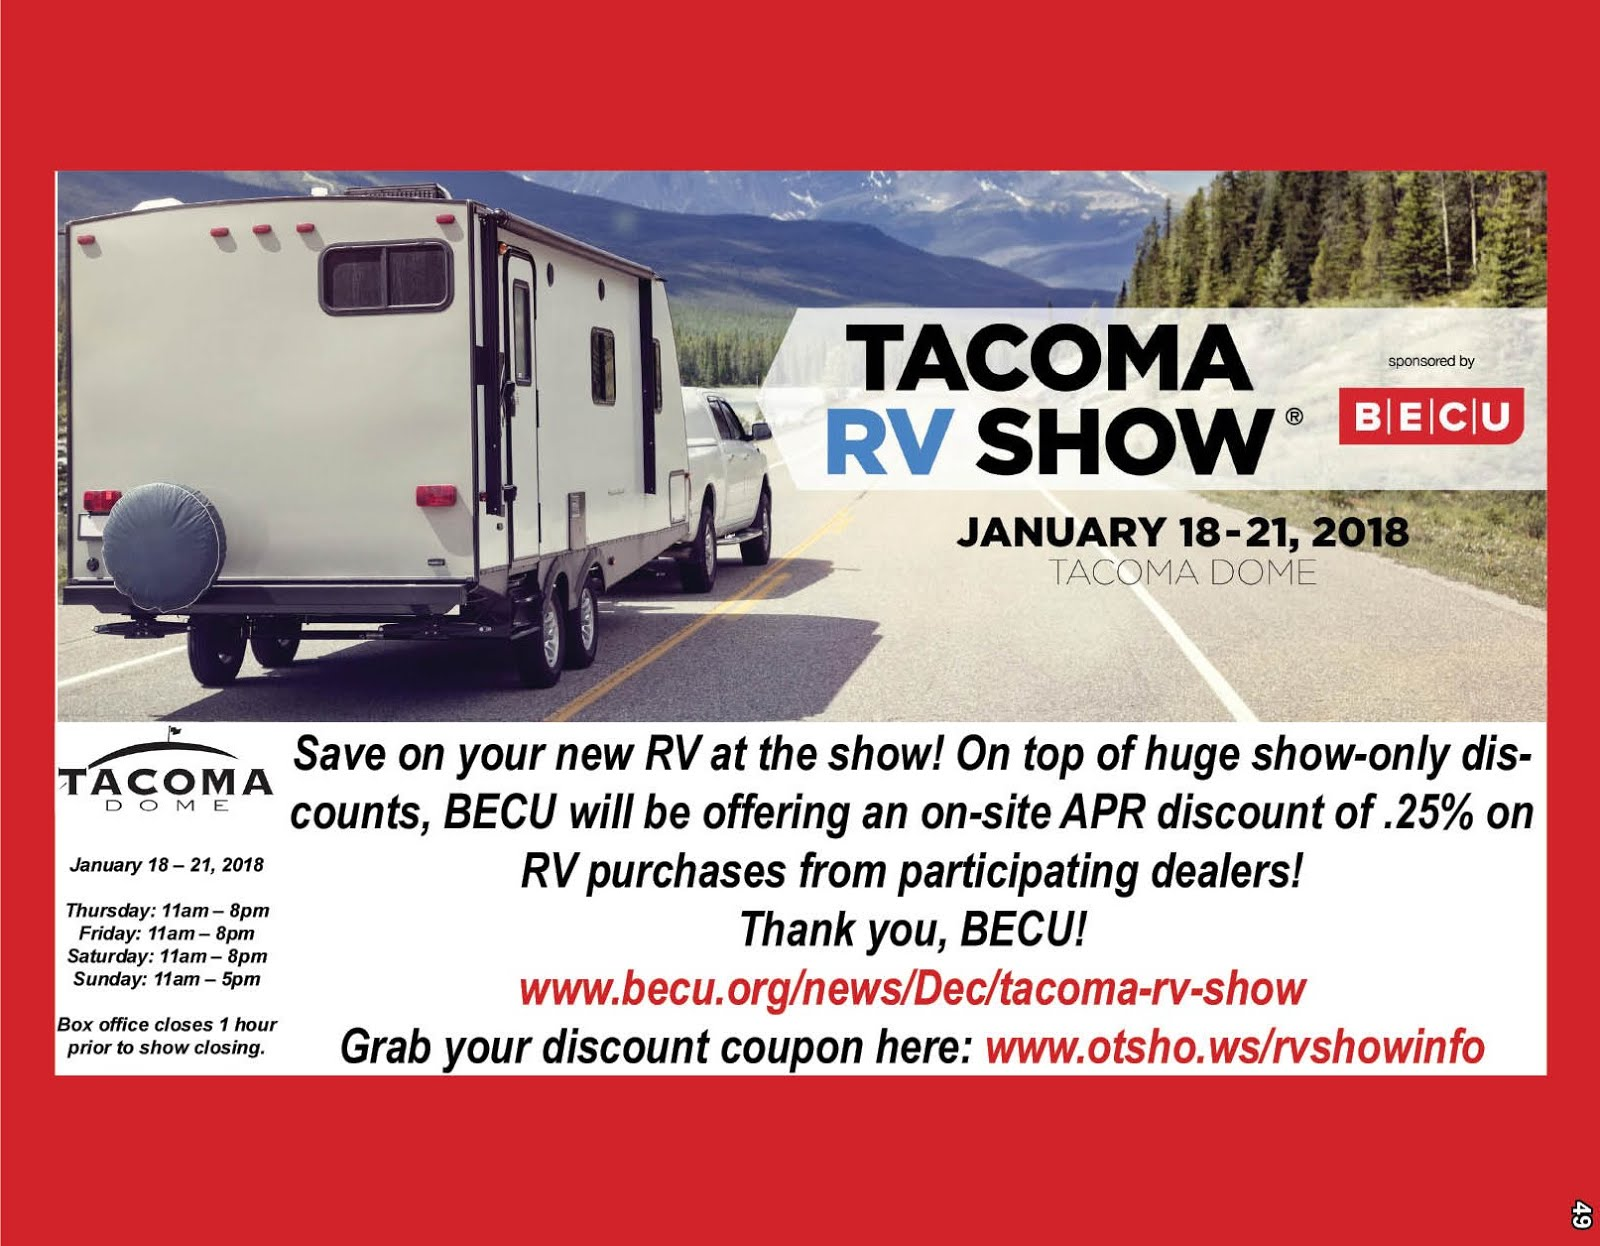 Tacoma RV Show @ The Tacoma Dome!!